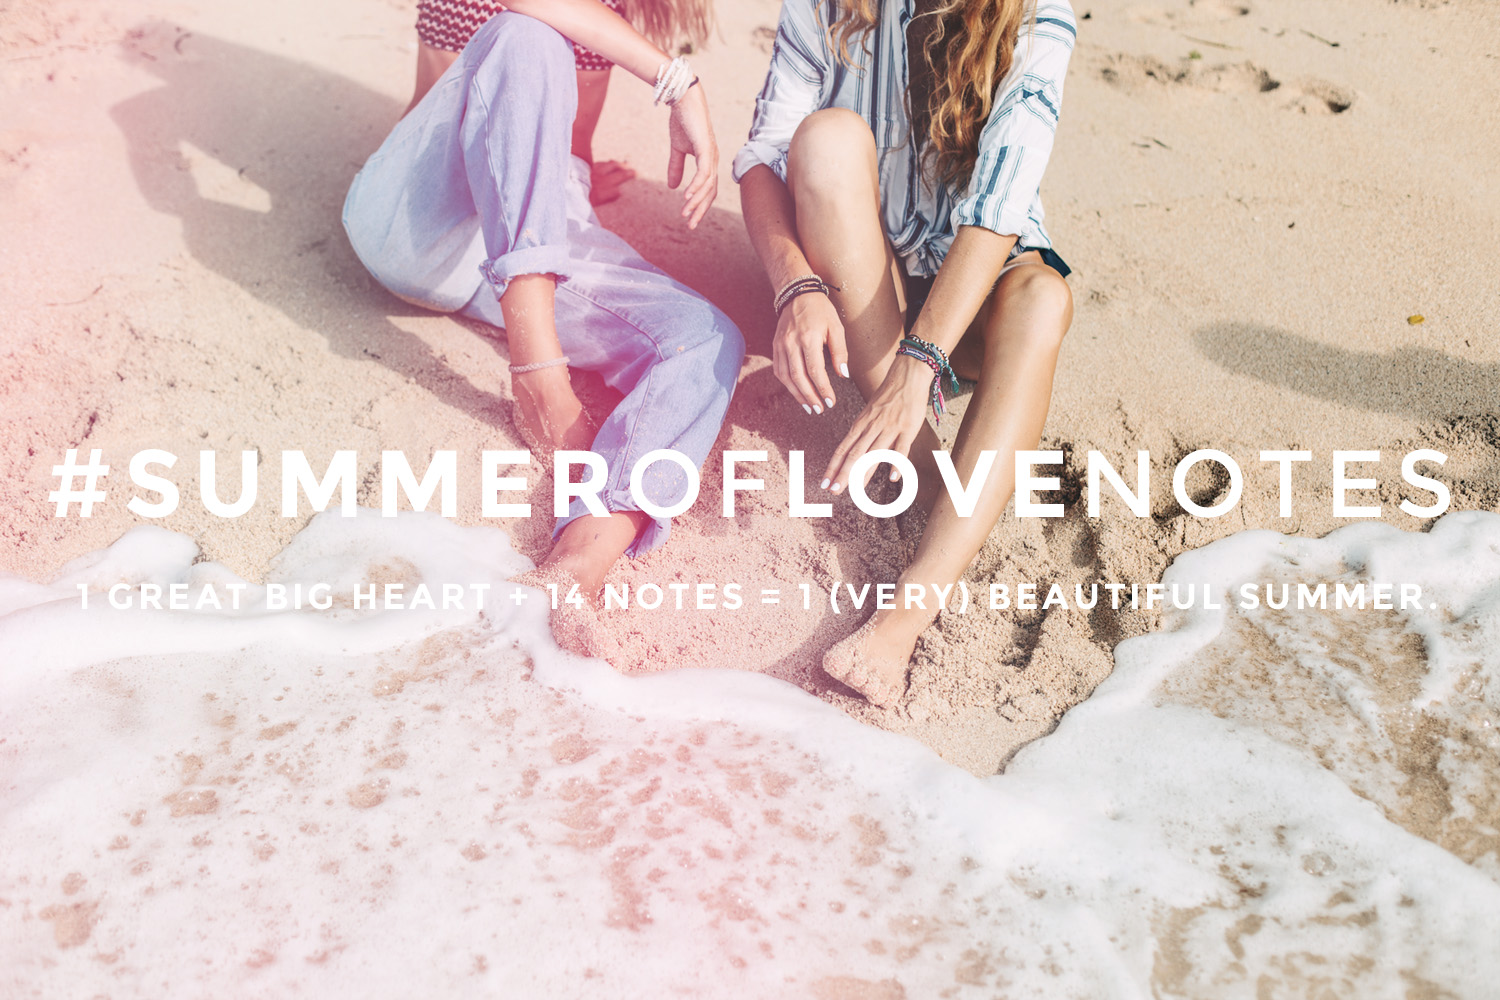 Summer of Love (Notes)